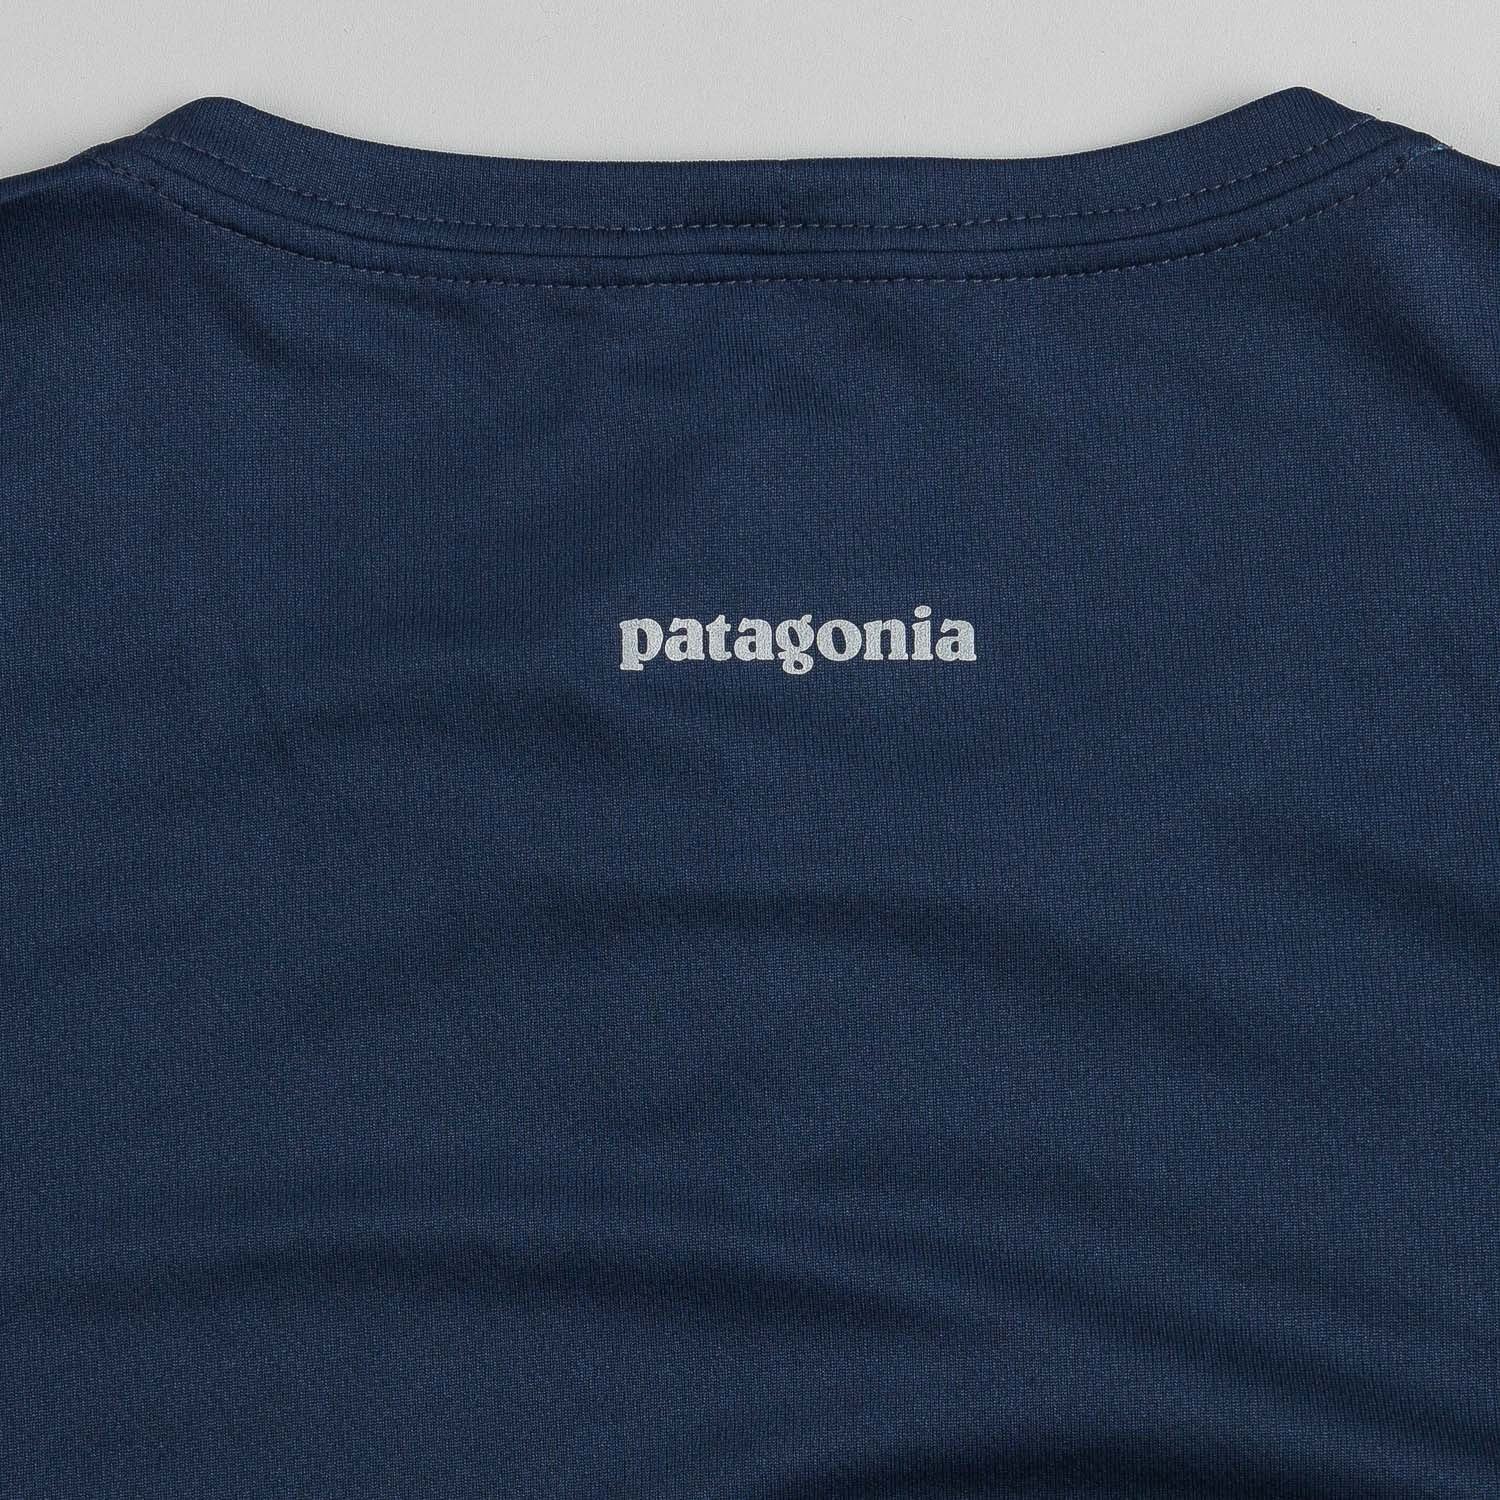 Patagonia Fore Runner T-Shirt - Navy Blue